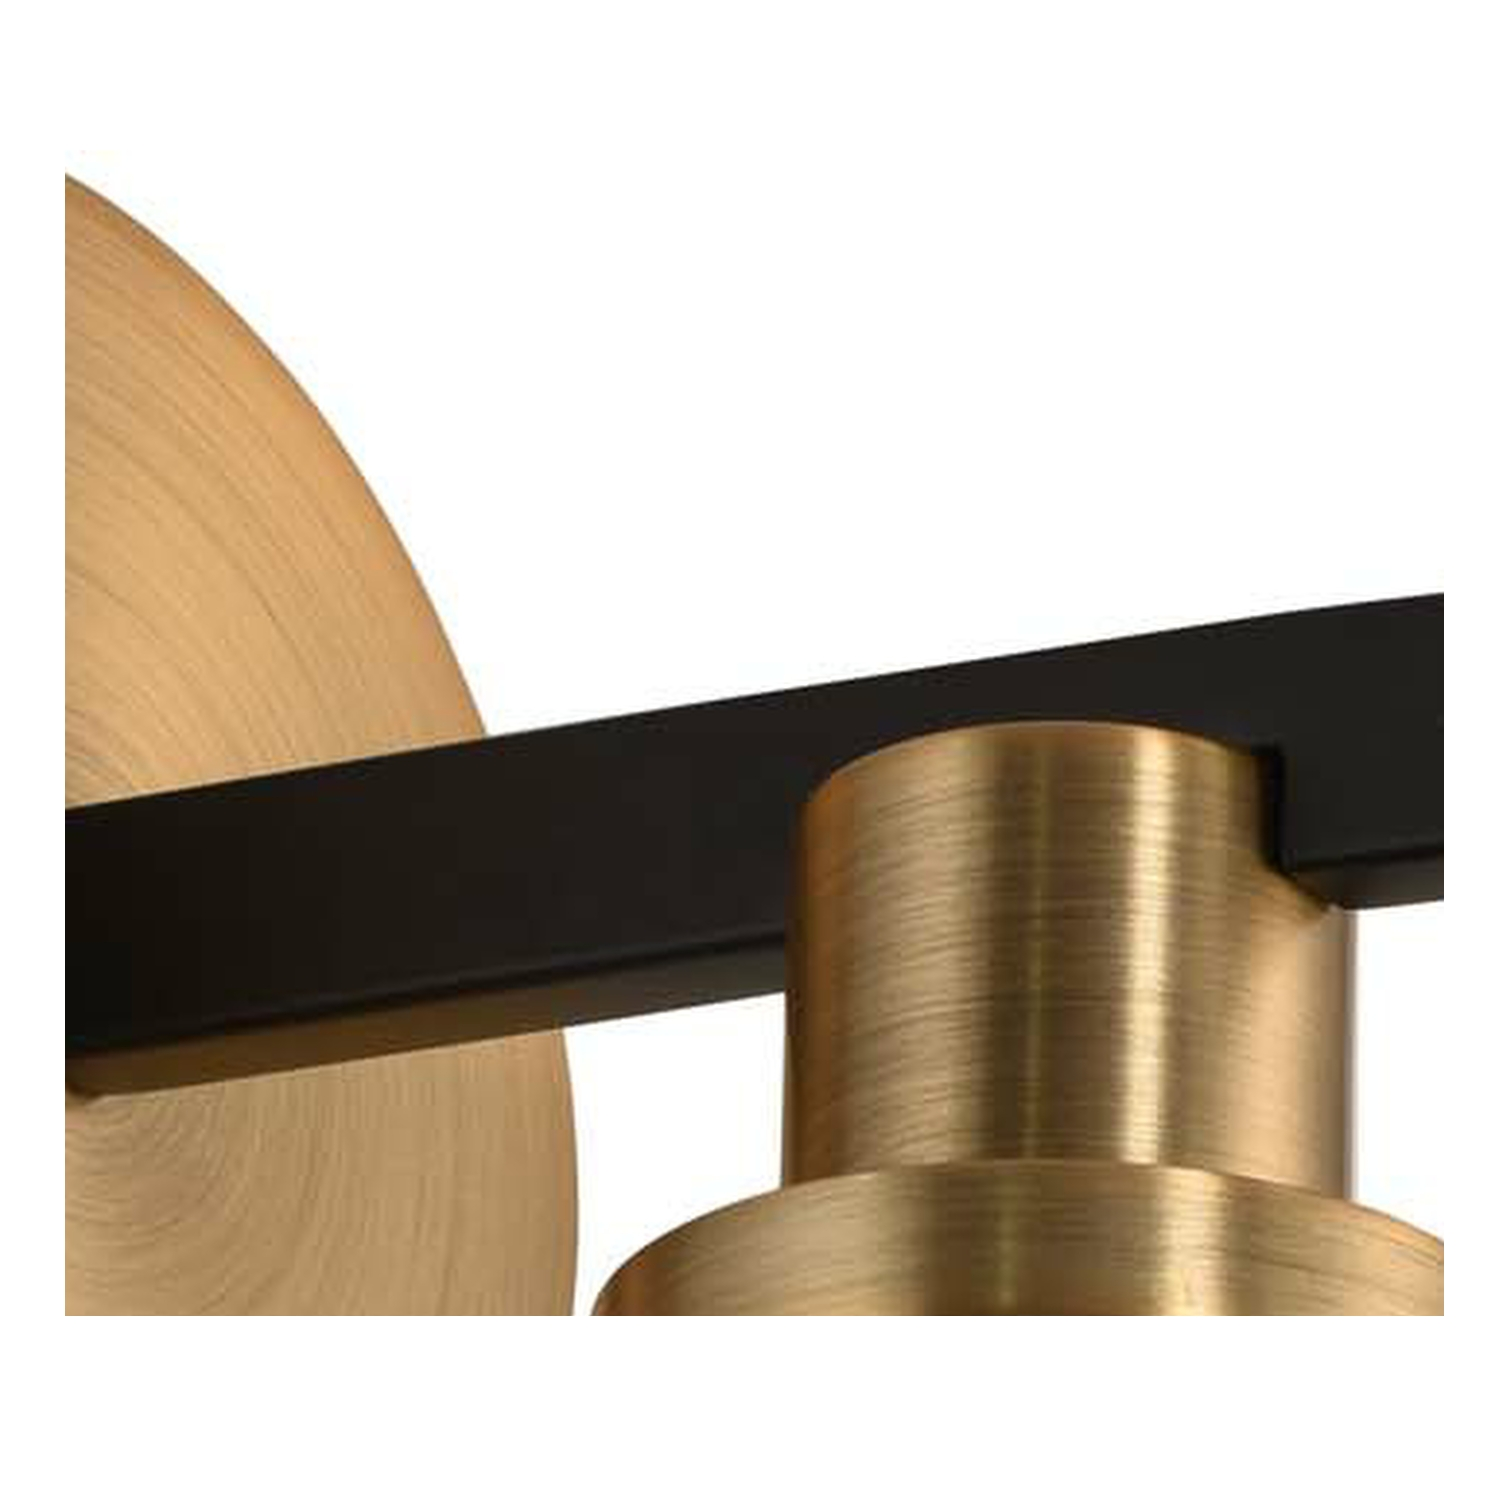 BBB-Matte-Black-and-Brushed-Pearlized-Brass